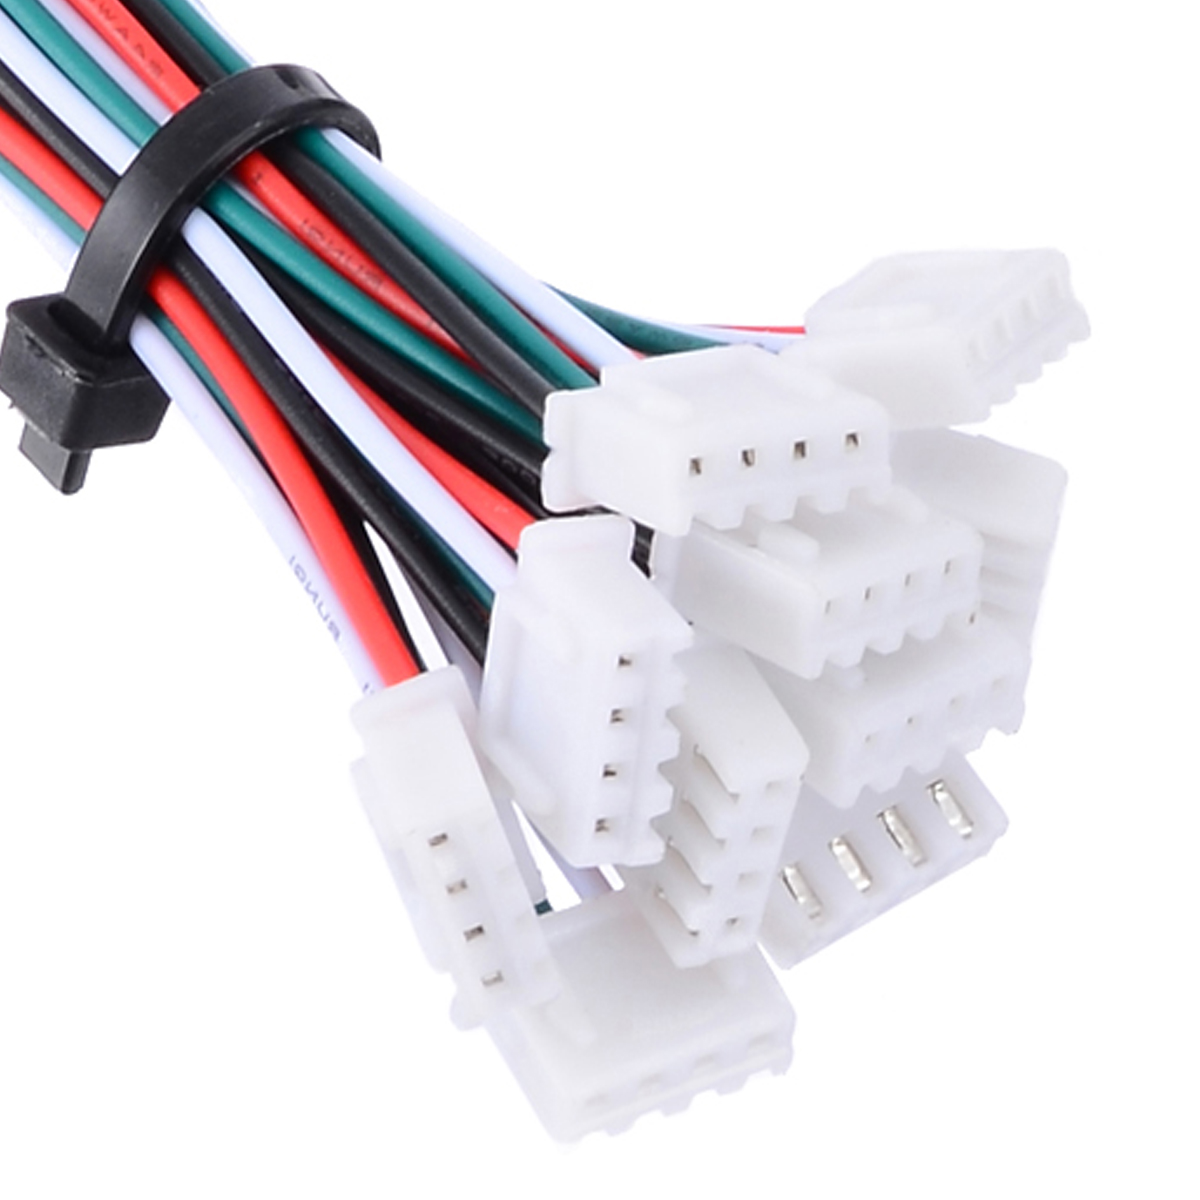 Pin Electrical Wire Connector Plug on